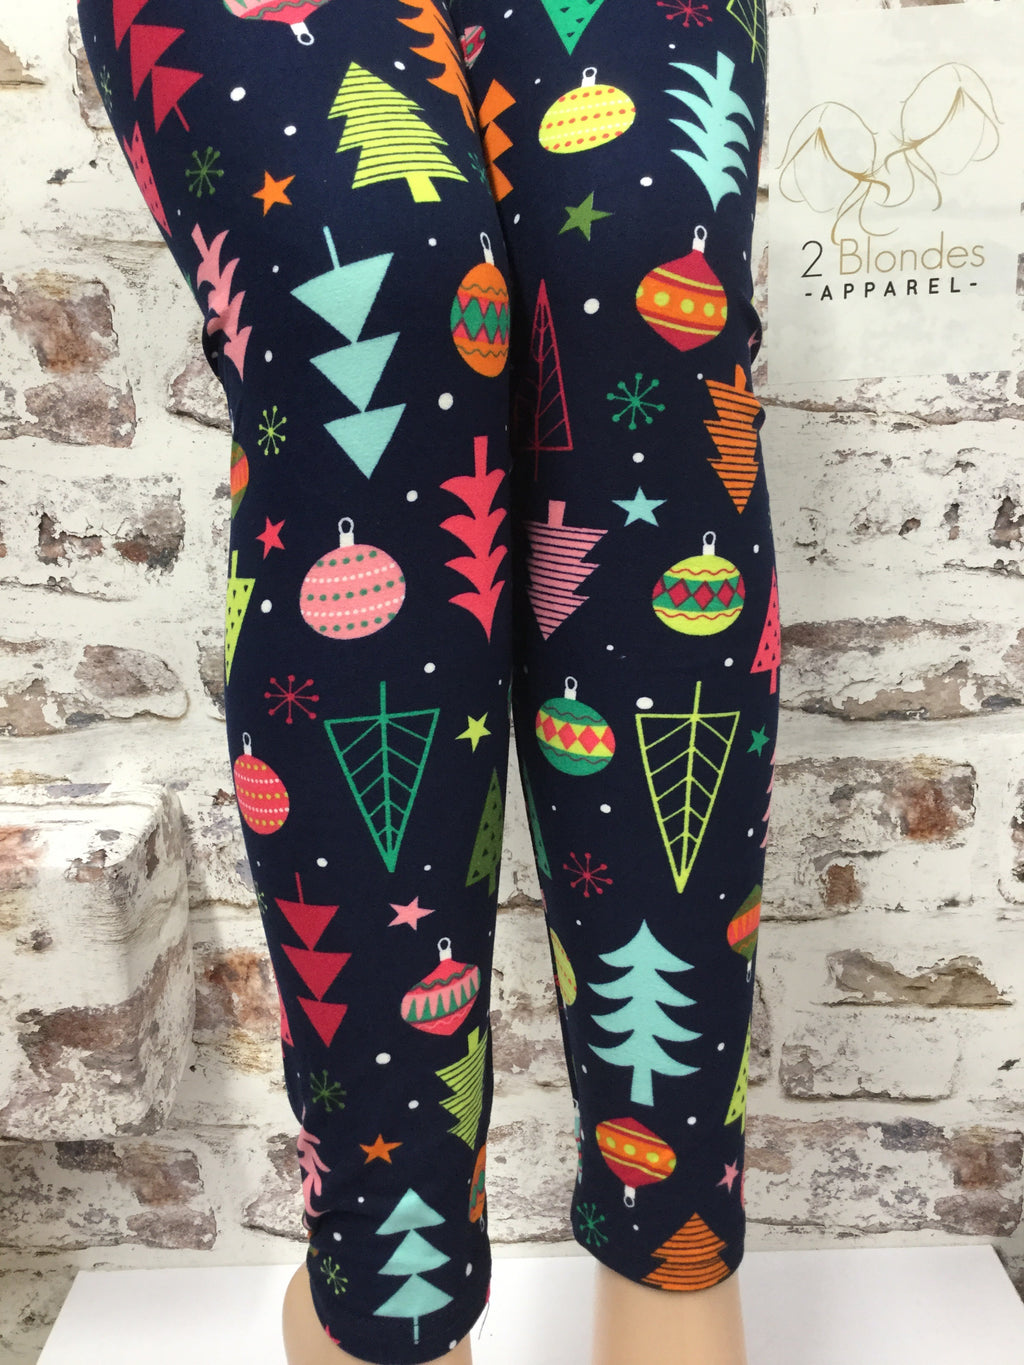 Pick out A Christmas Tree Printed Leggings